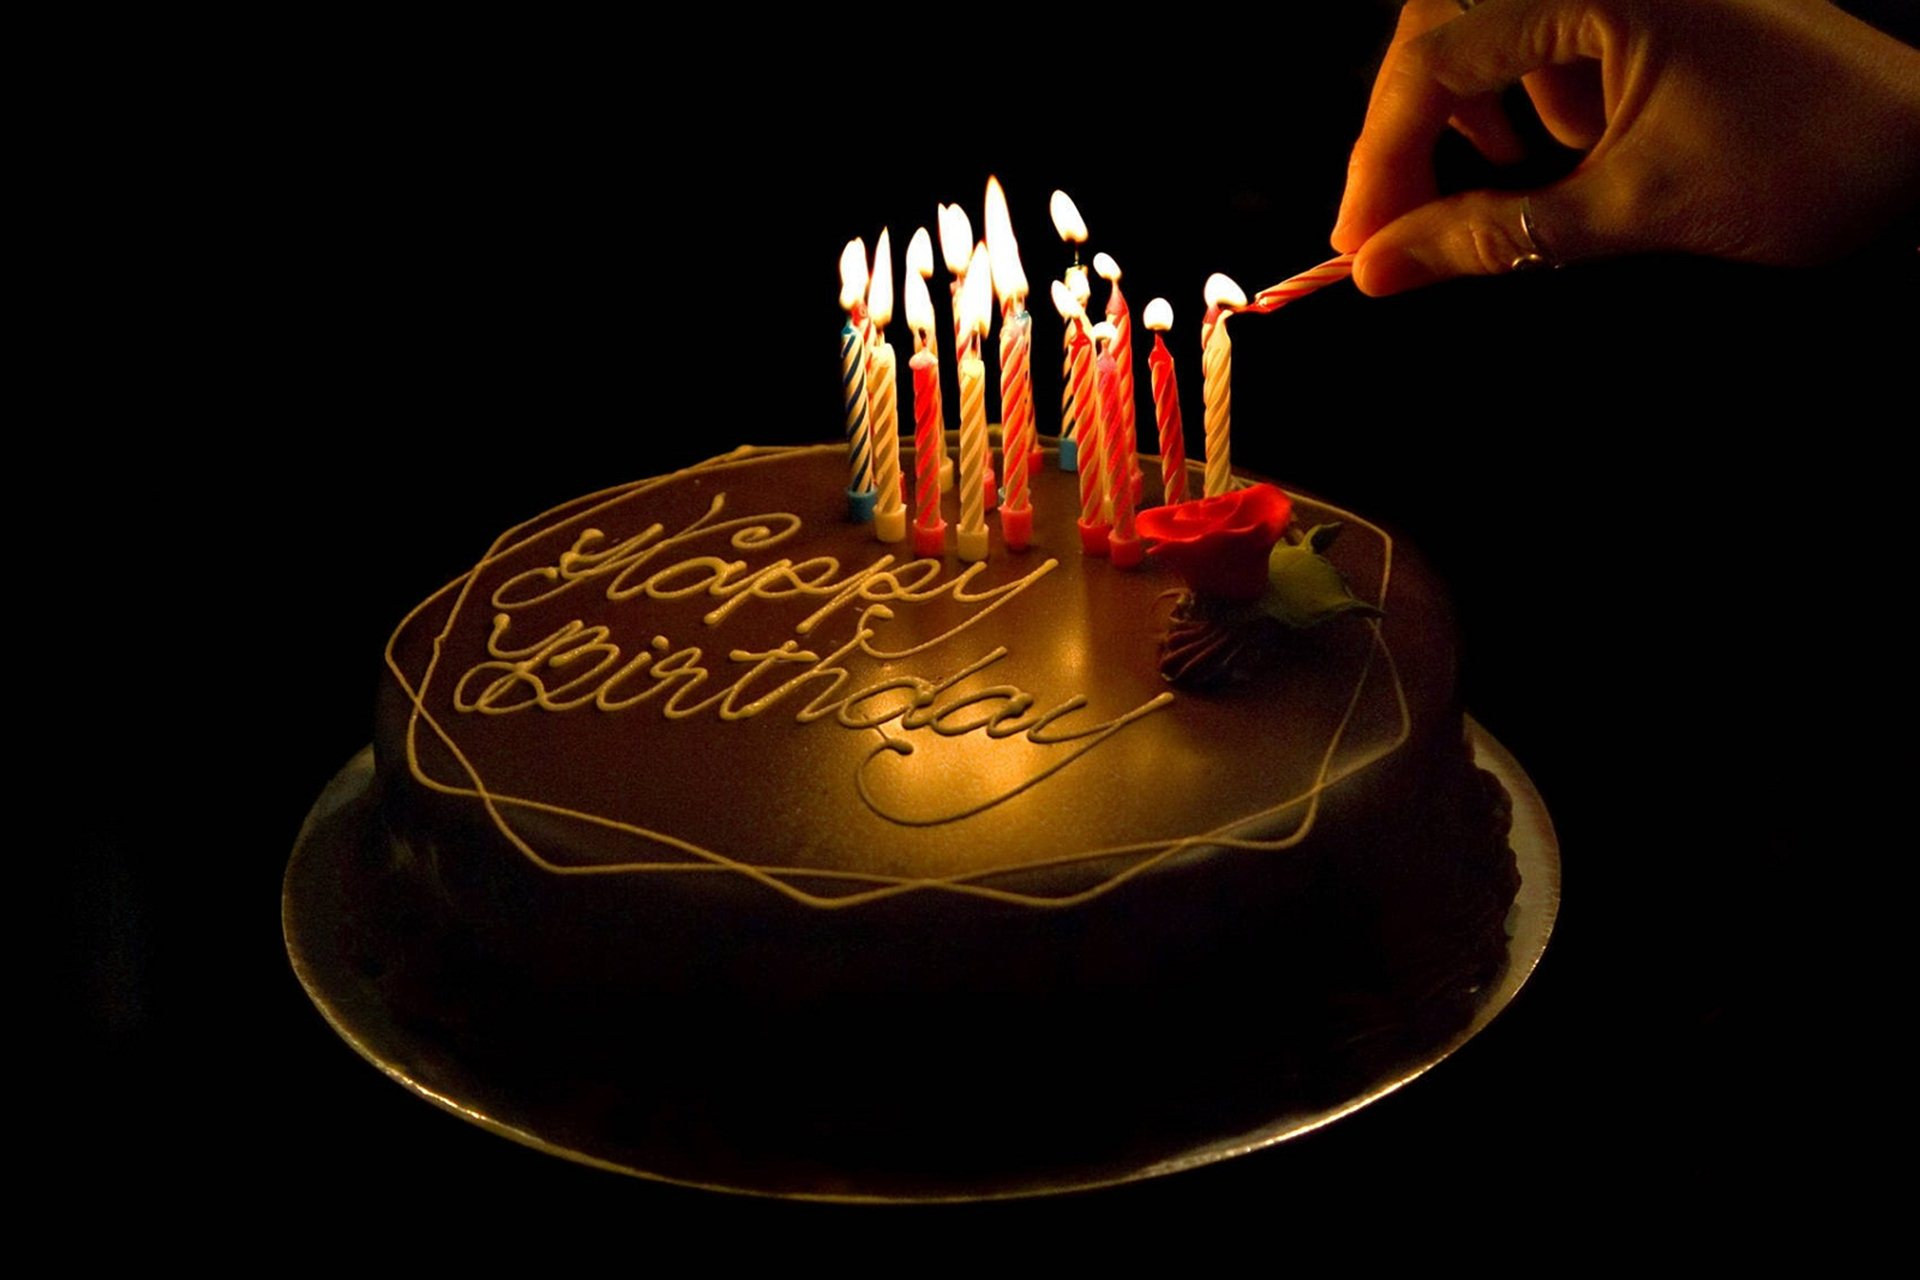 live wallpaper birthday wishes ; Happy-Birthday-Cake-To-You-HD-Wallpaper